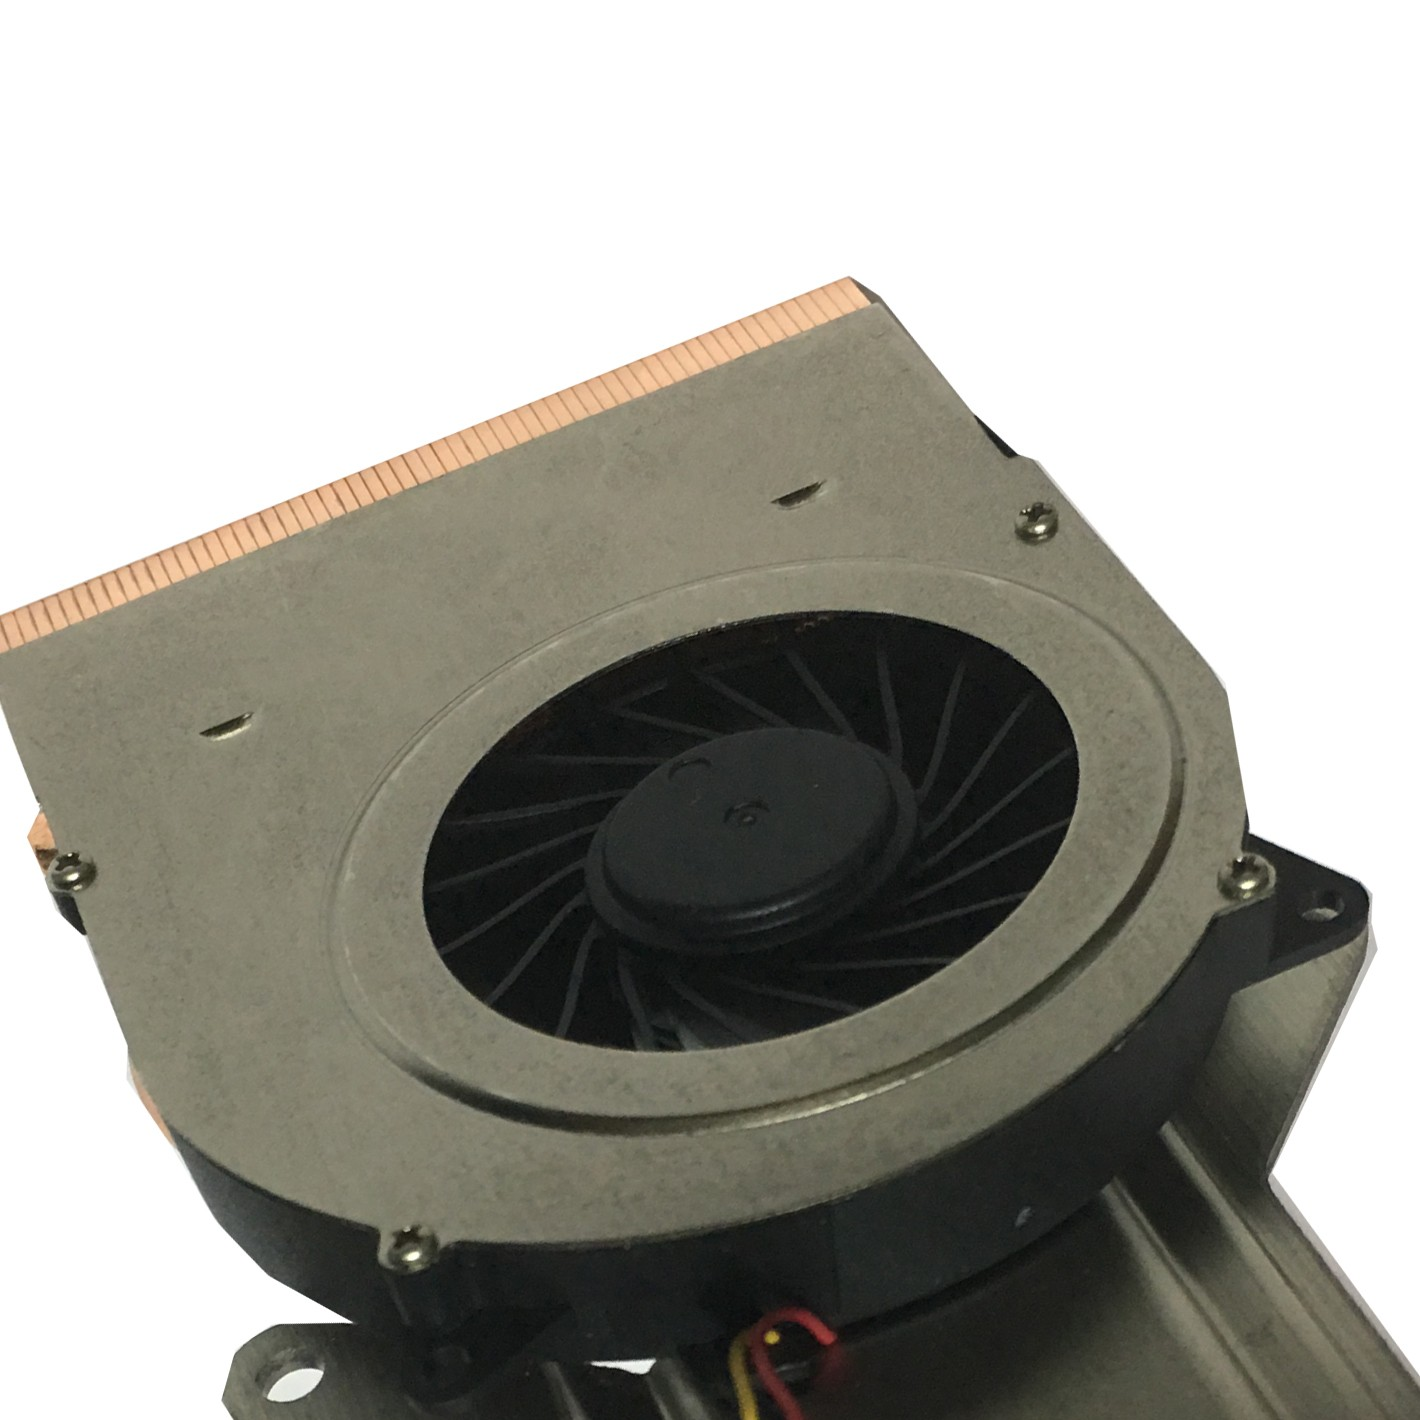 heat sink with heat pipe in laptop